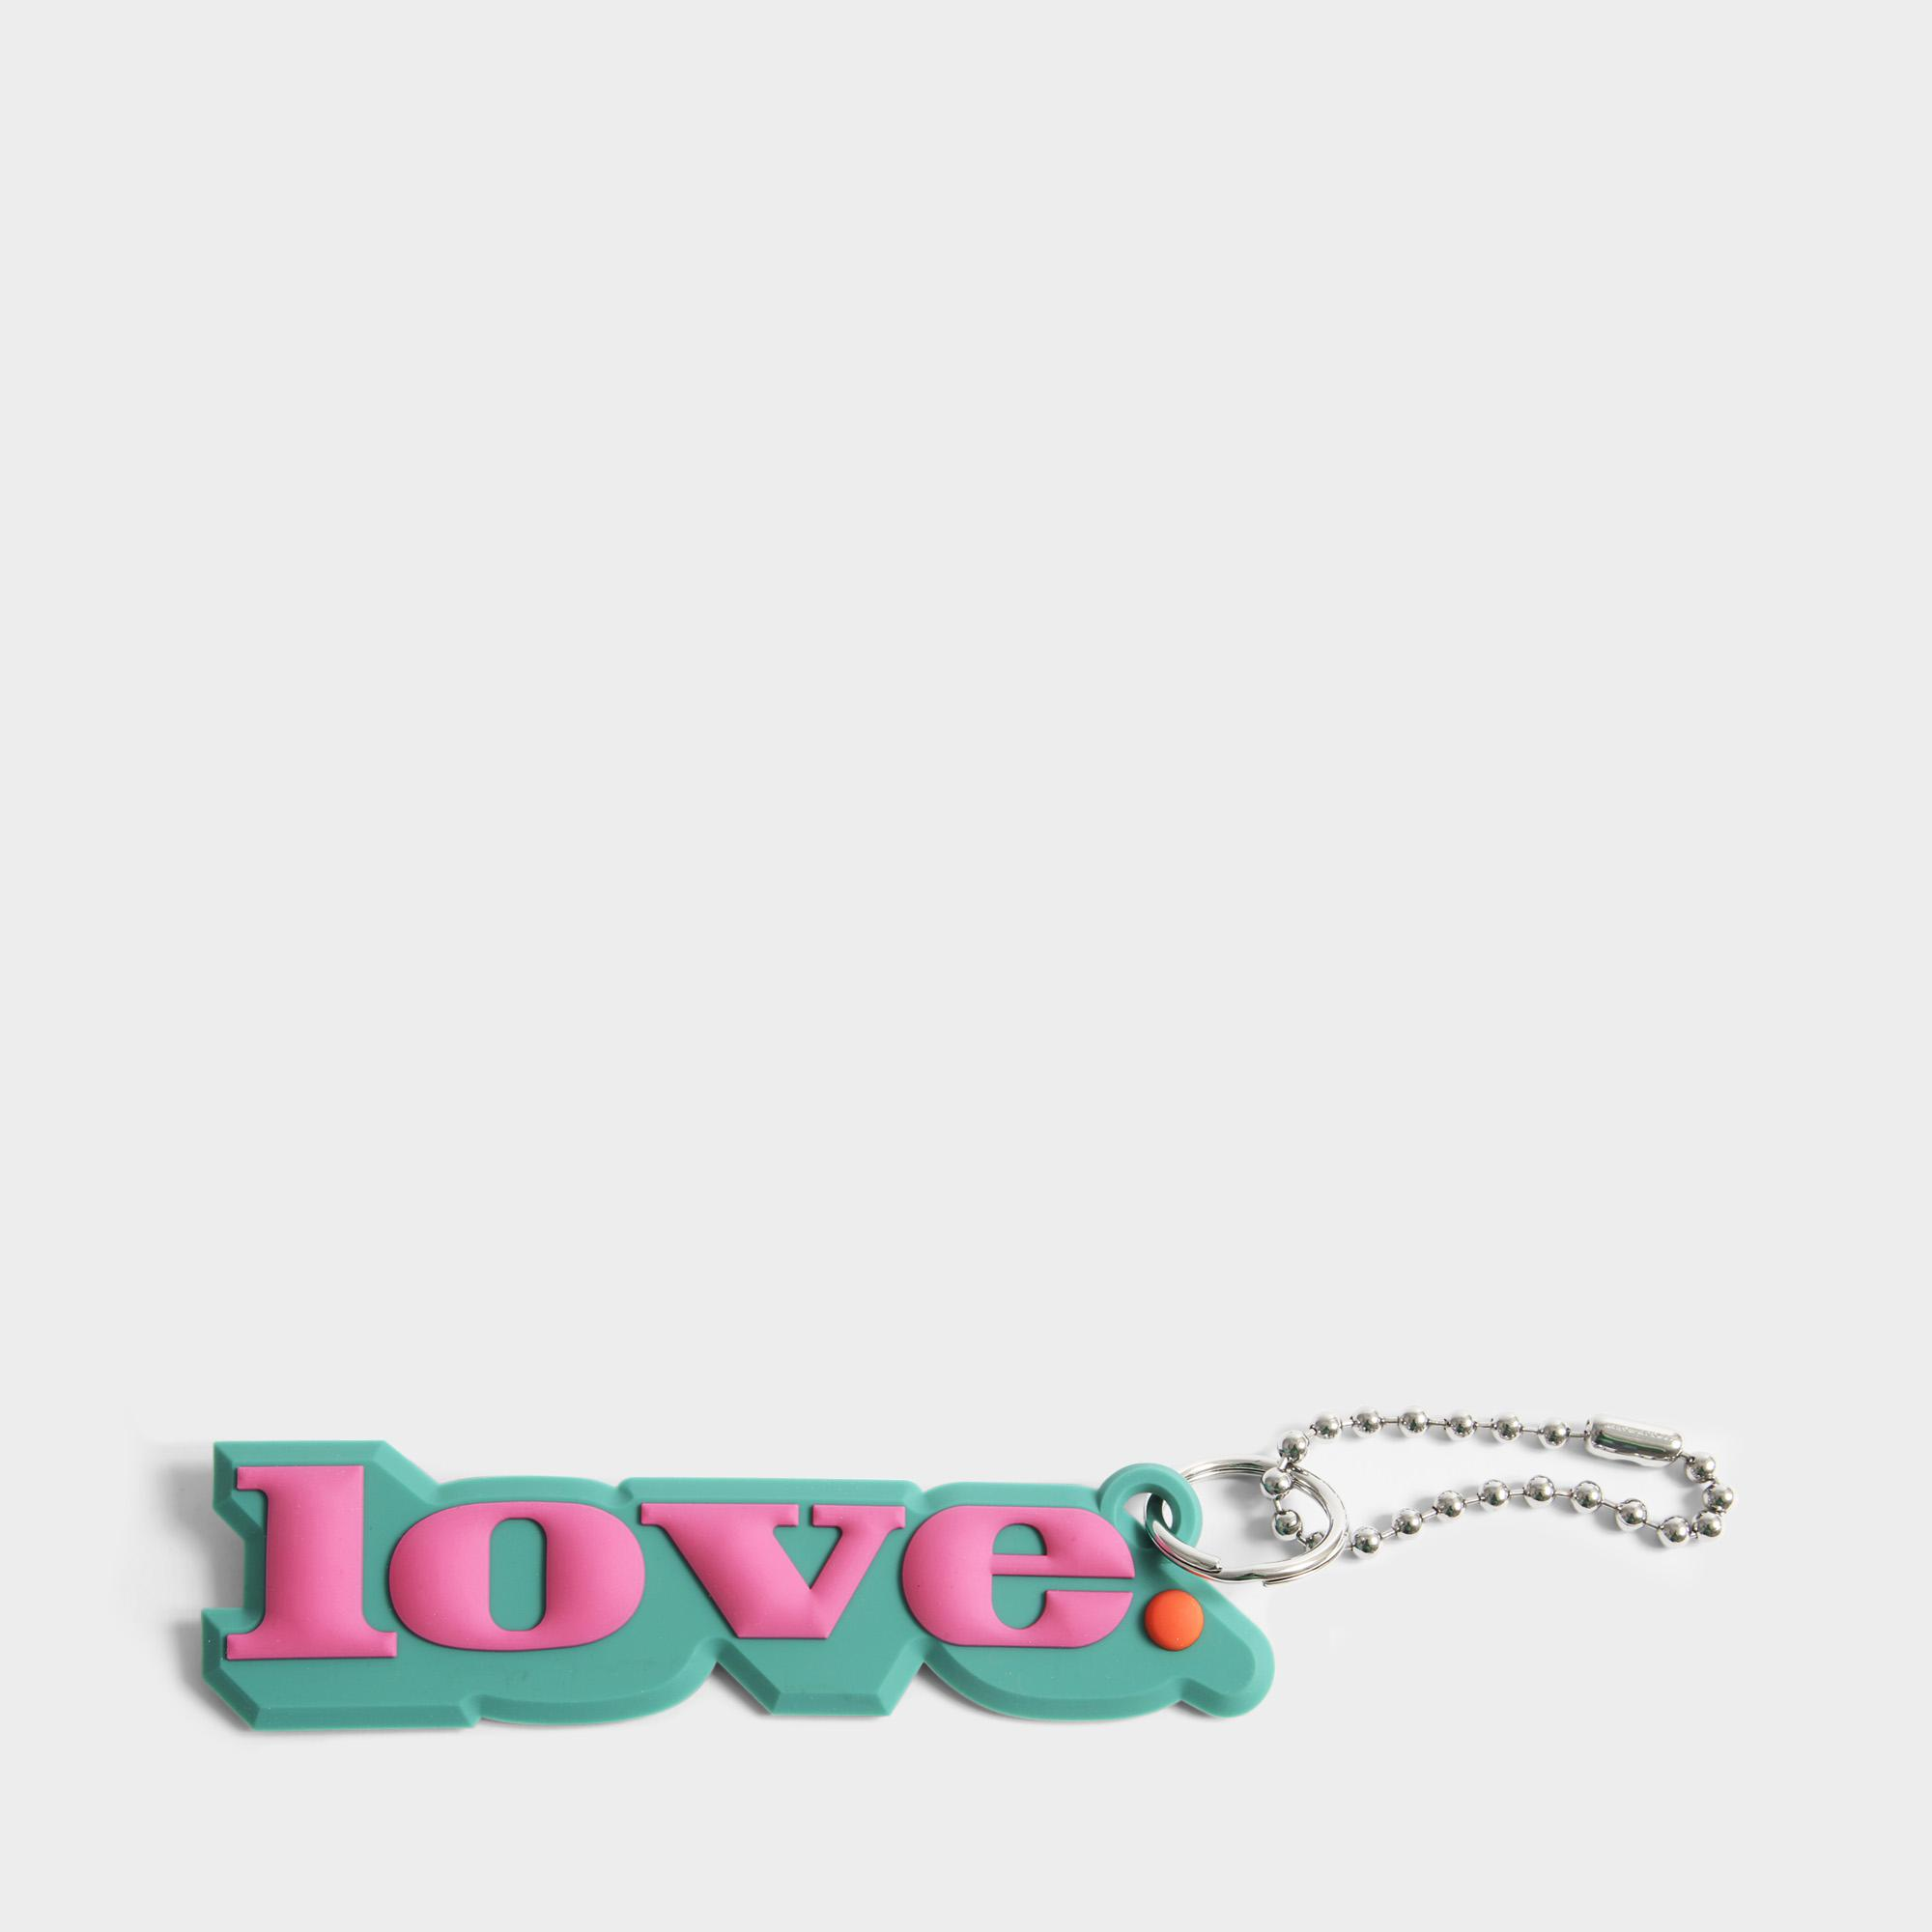 Marc Jacobs Silicone Love Charm Bag Accessory In Pink Silicone - Lyst